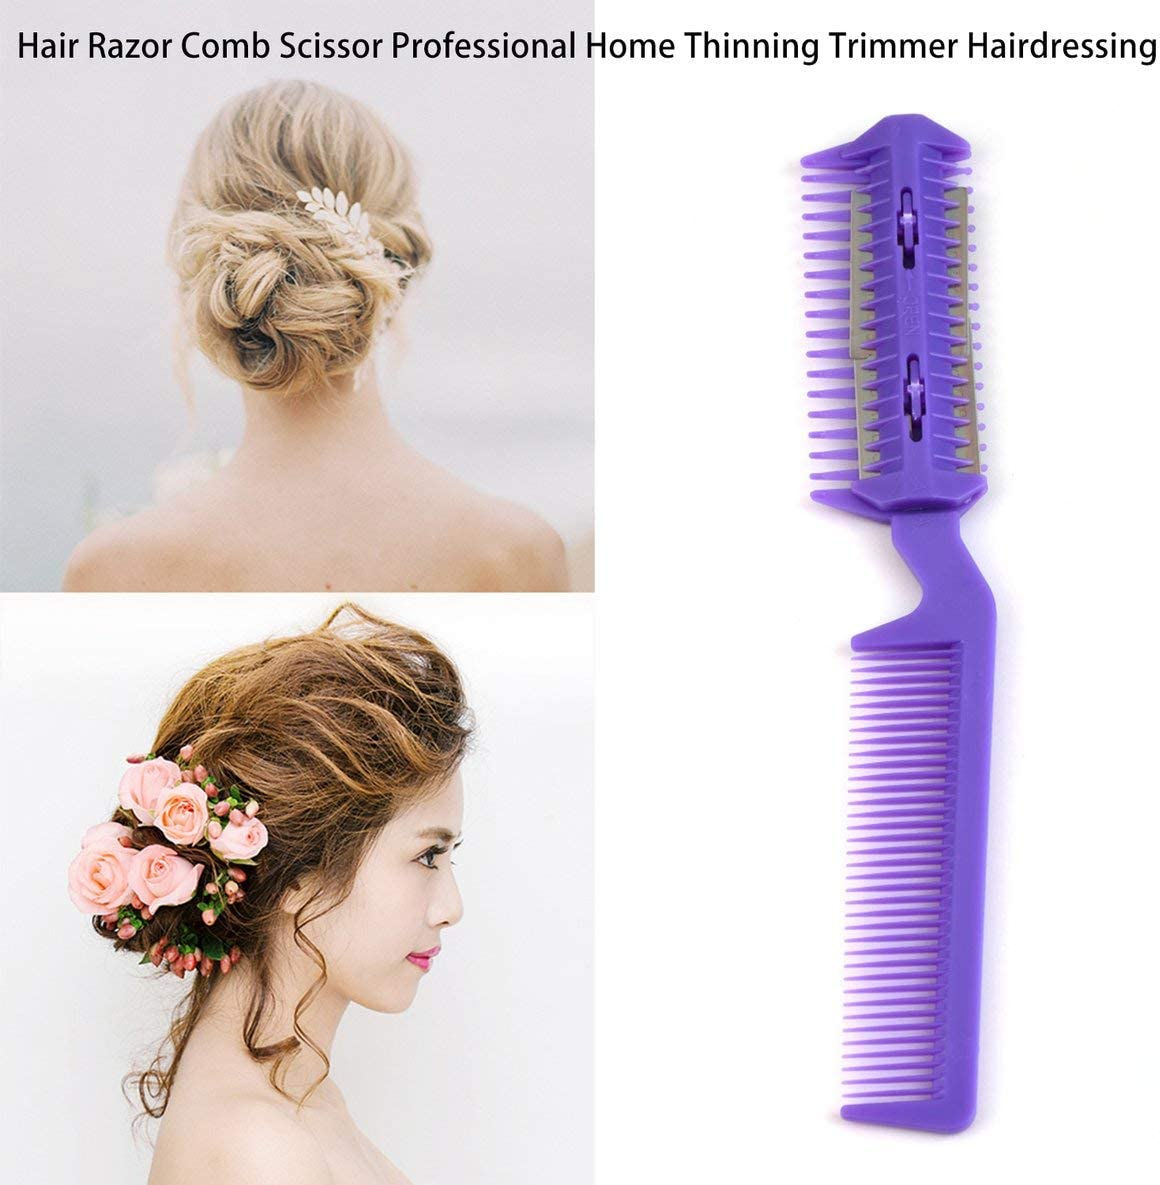 Rouku Multi-Functional Professional Home DIY Hair Razor Comb Hairdressing for Shaping Layering and Trimming Hair